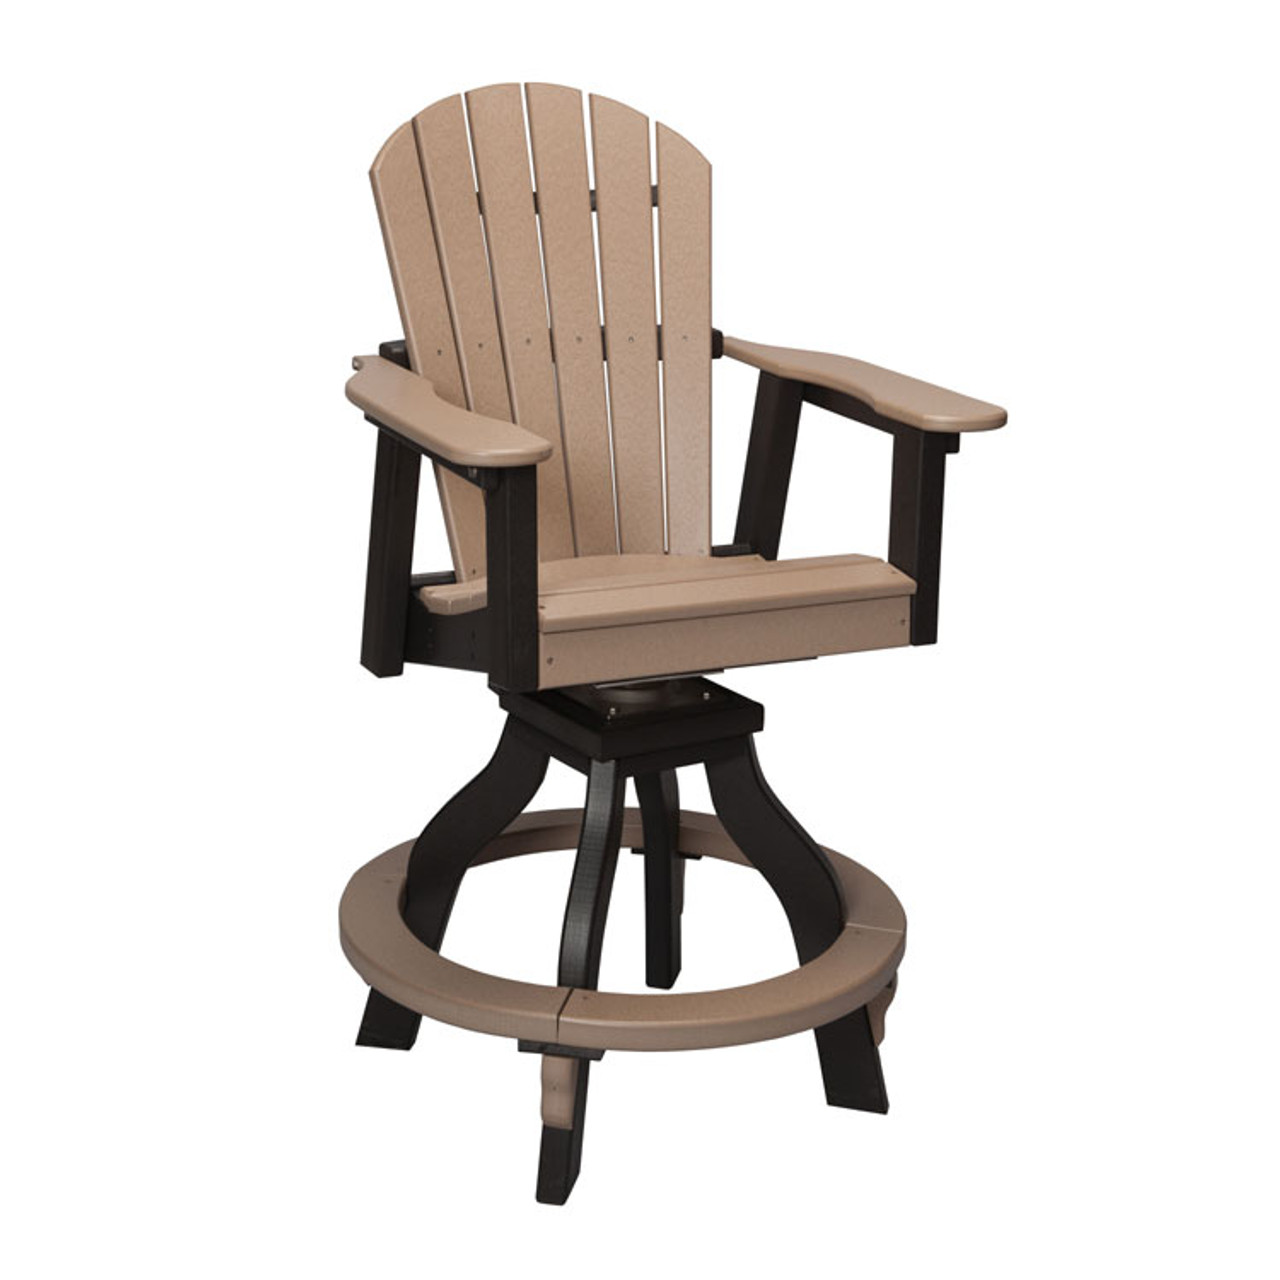 Counter Height Chairs With Arms Oceanside Outdoor Poly Lumber Swivel Counter Height Stool With Arms